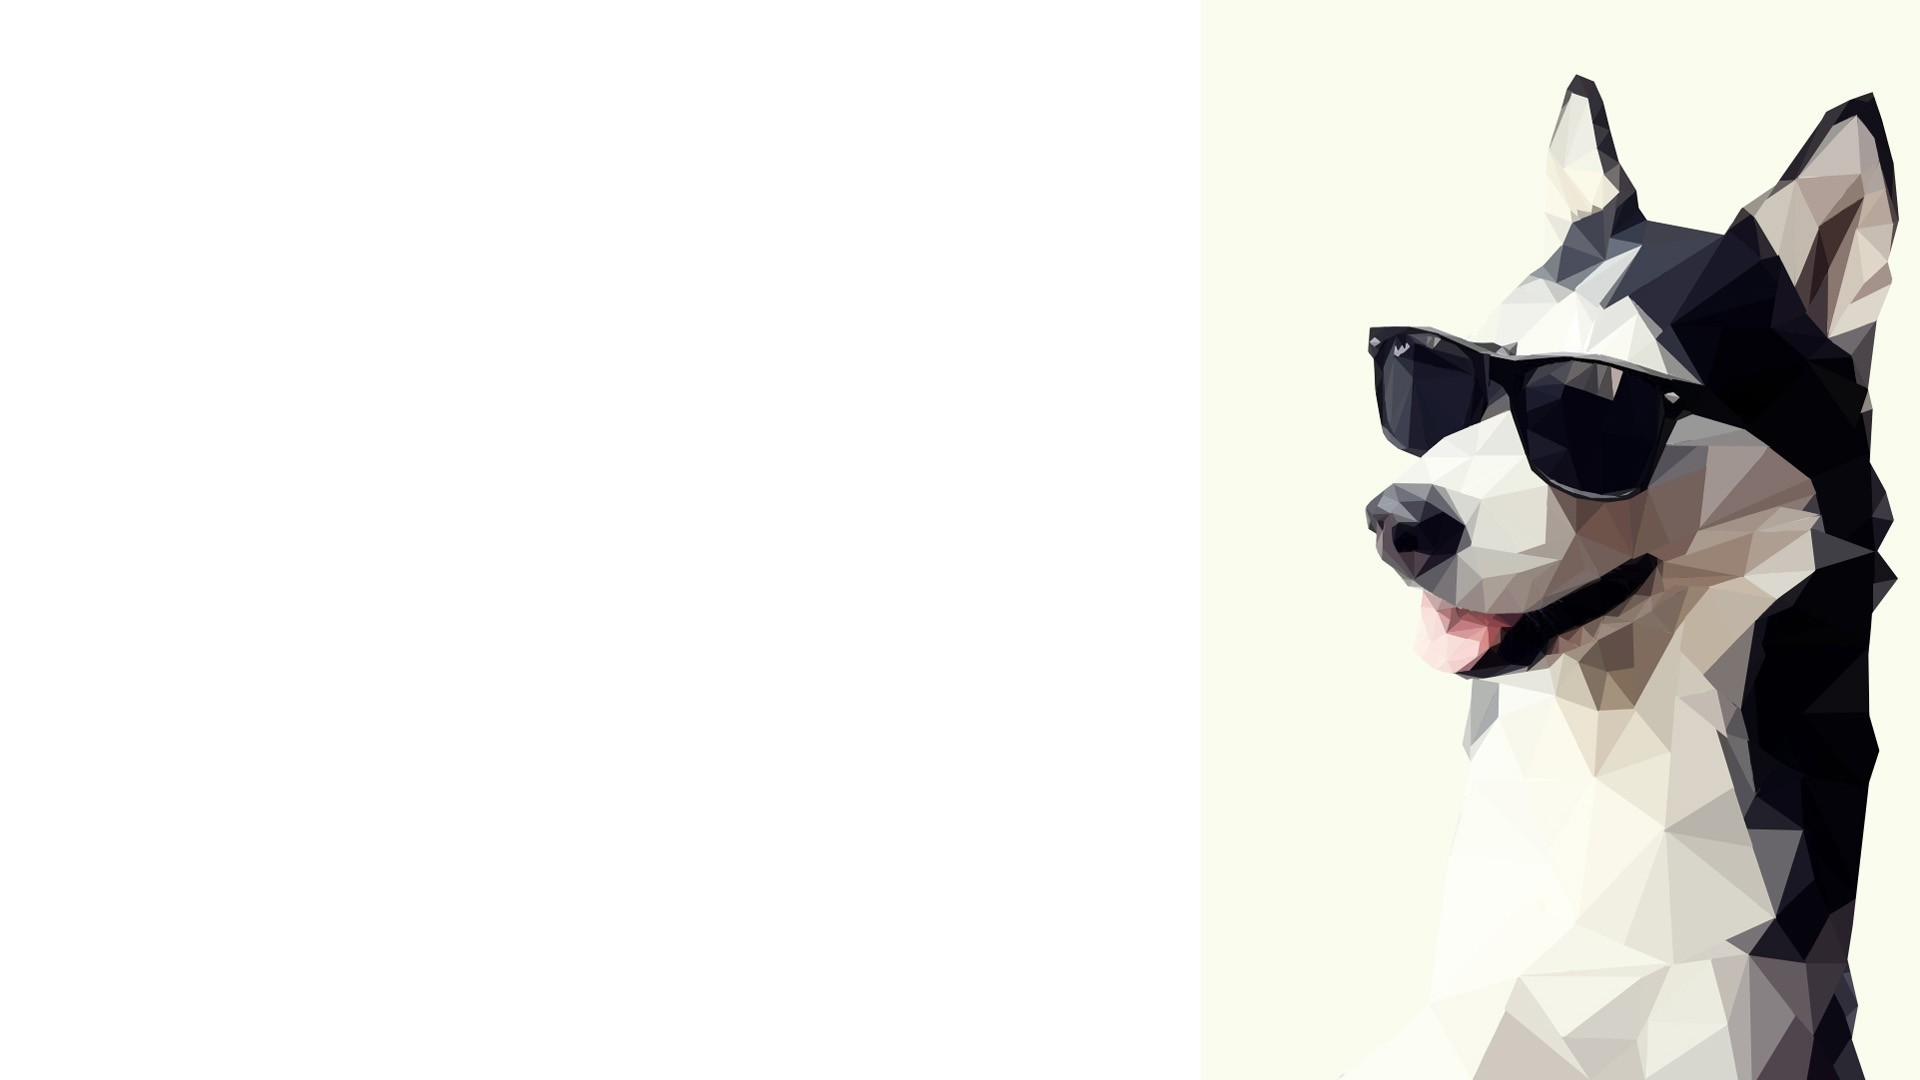 Shady Husky [1920×1080] Need #iPhone #6S #Plus #Wallpaper/ #Background for  #IPhone6SPlus? Follow iPhone 6S Plus 3Wallpapers/ #Backgrounds Must to H…  …